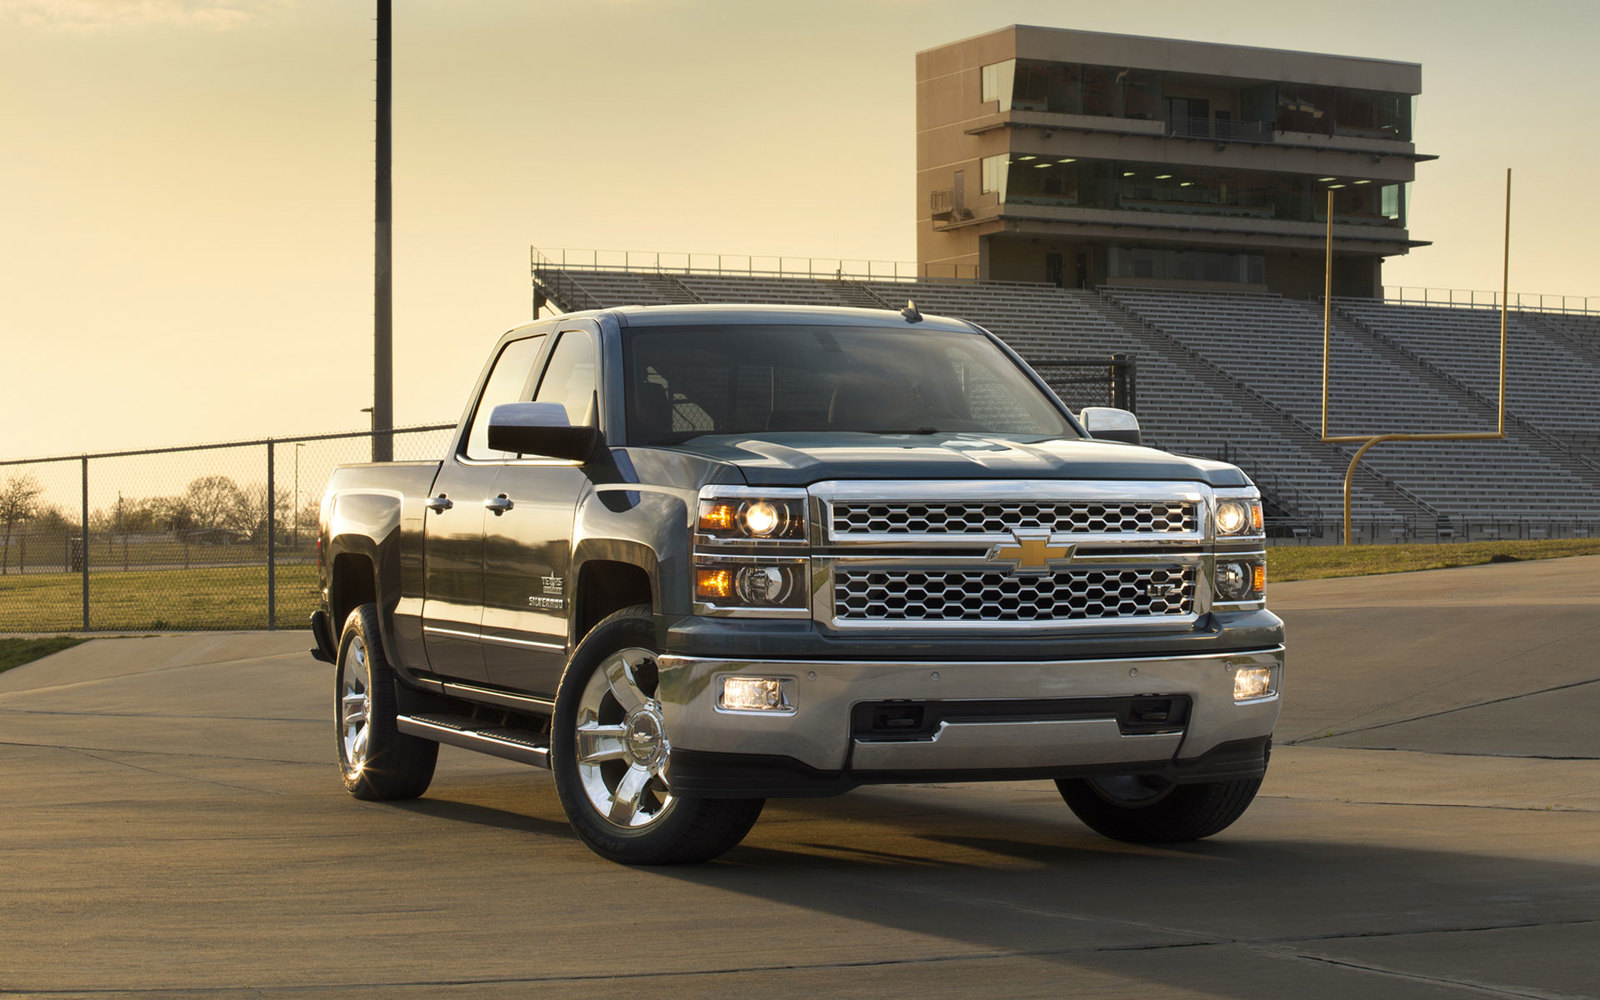 Chevrolet Silverado Texas Edition